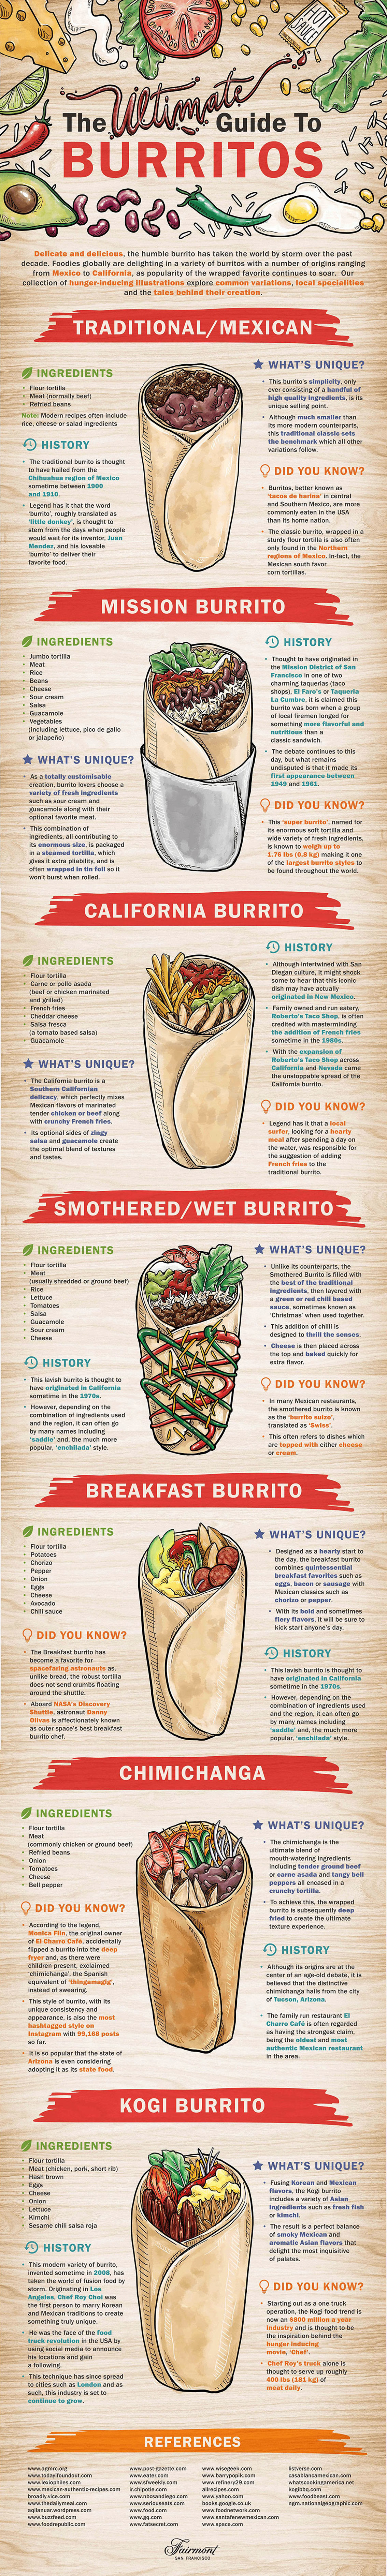 The Ultimate Guide to Burritos - Cooking Infographic